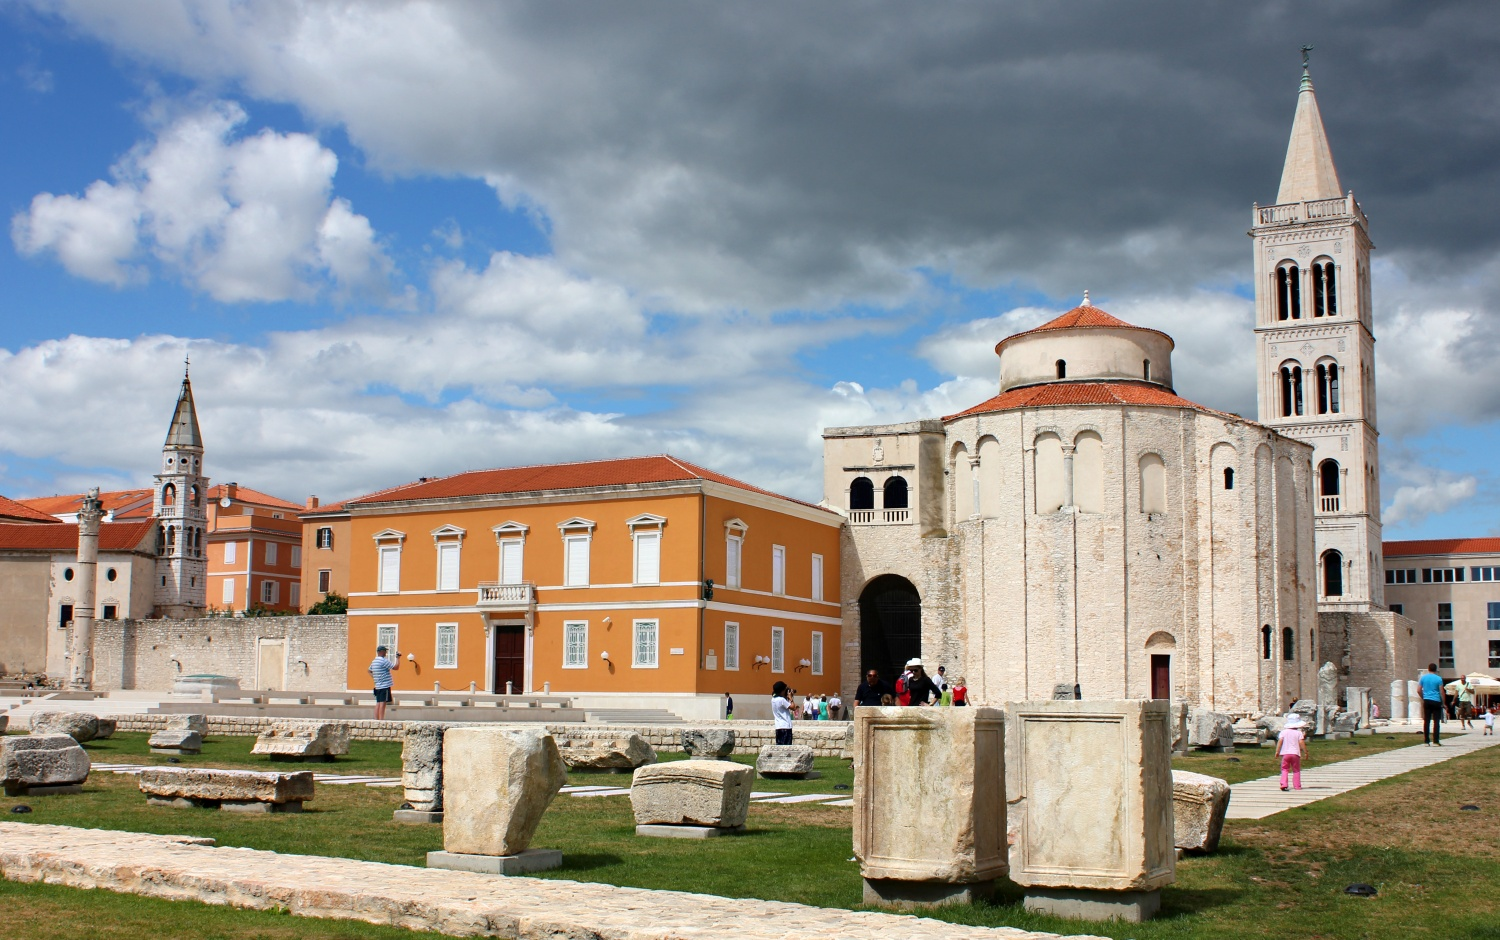 3.Roman Forum, St Donatus' Church and the Belltower of St Anastasia's Cathedral in Zadar